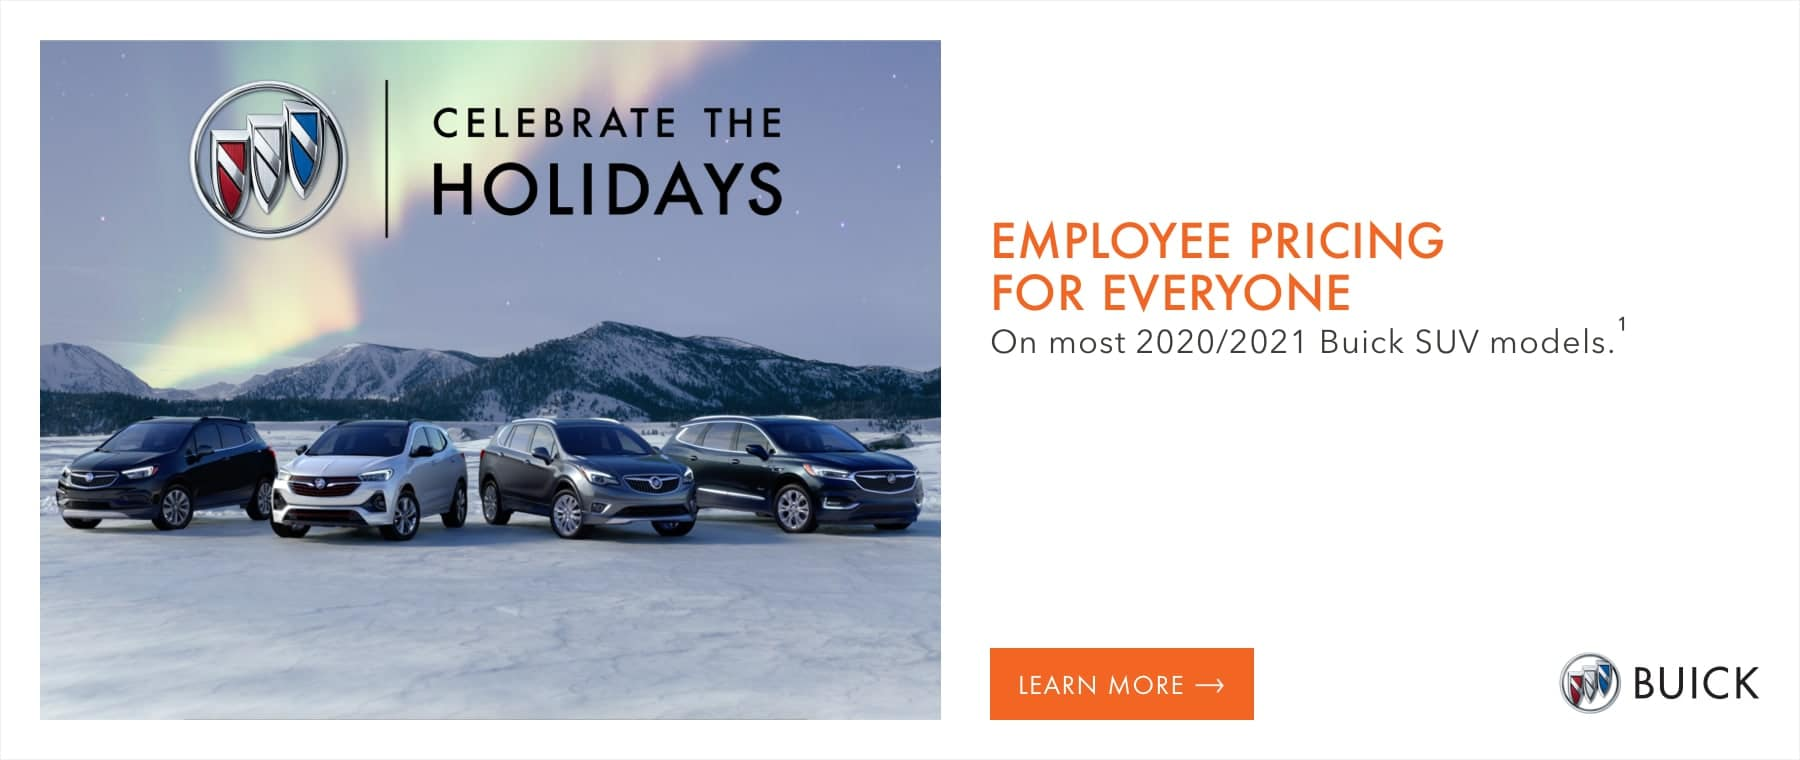 EMPLOYEE PRICING FOR EVERYONE ON MOST 2020/2021 BUICK SUV MODELS.